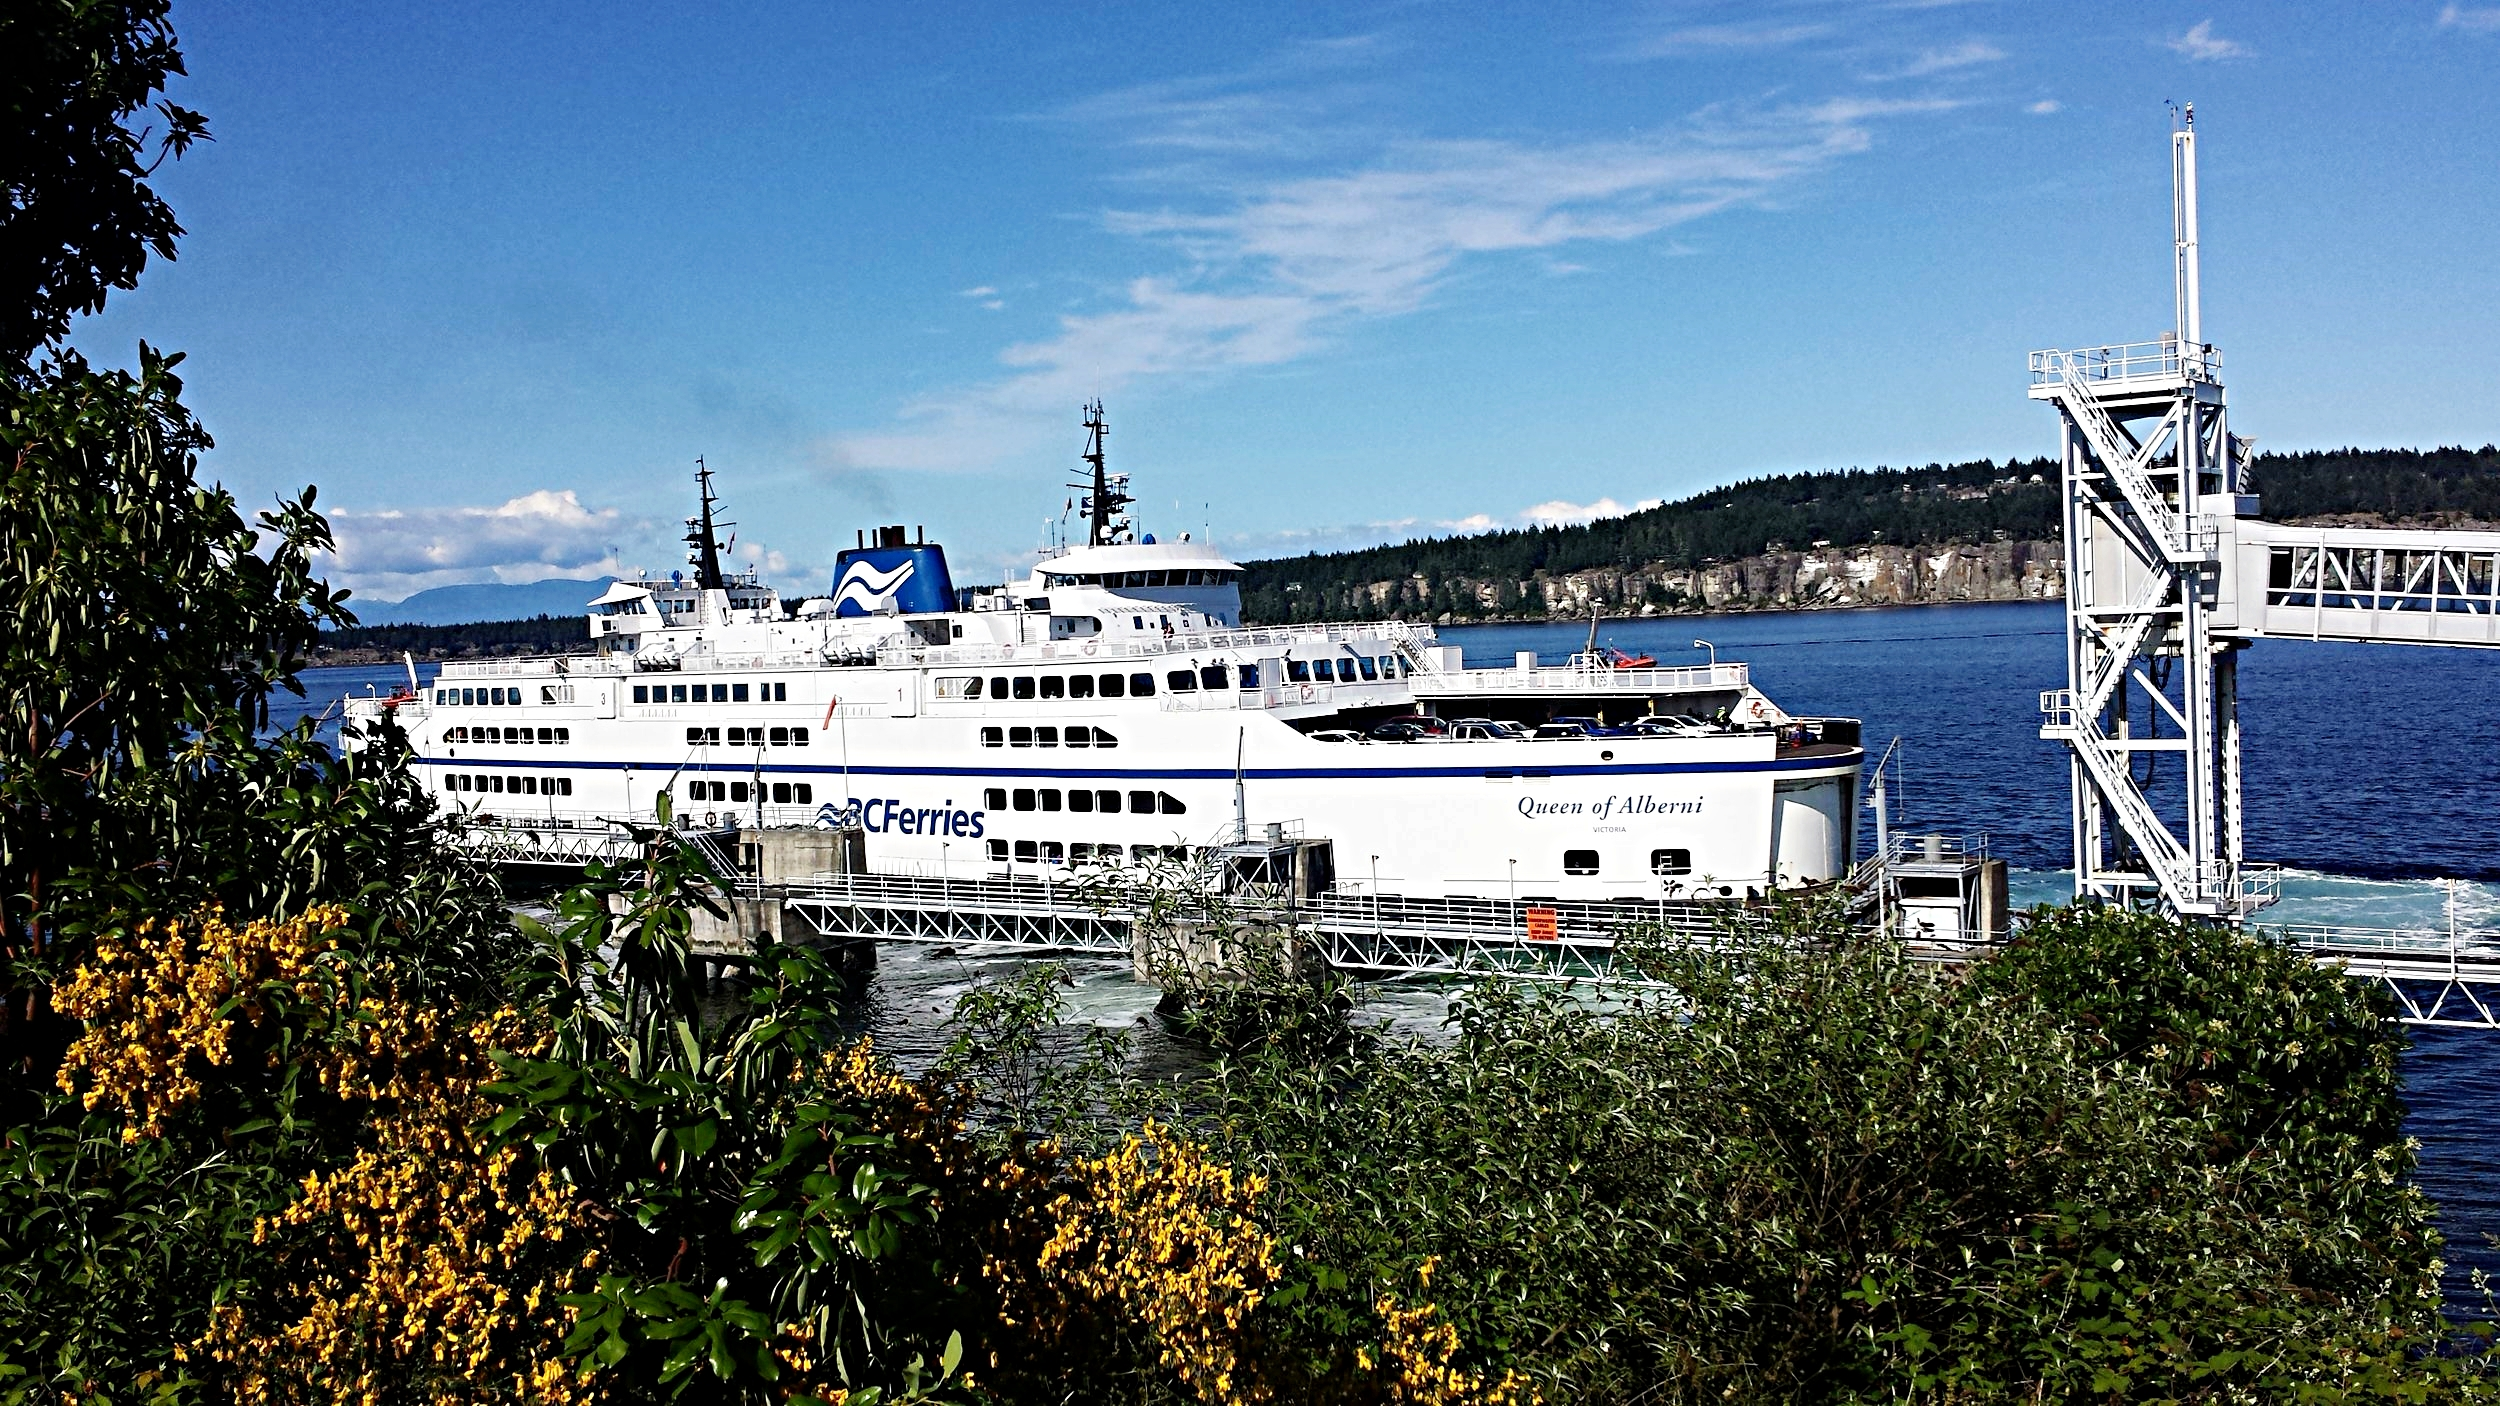 One of the gigantic efficient BC Ferries, I love public transport in British Columbia, Canada.